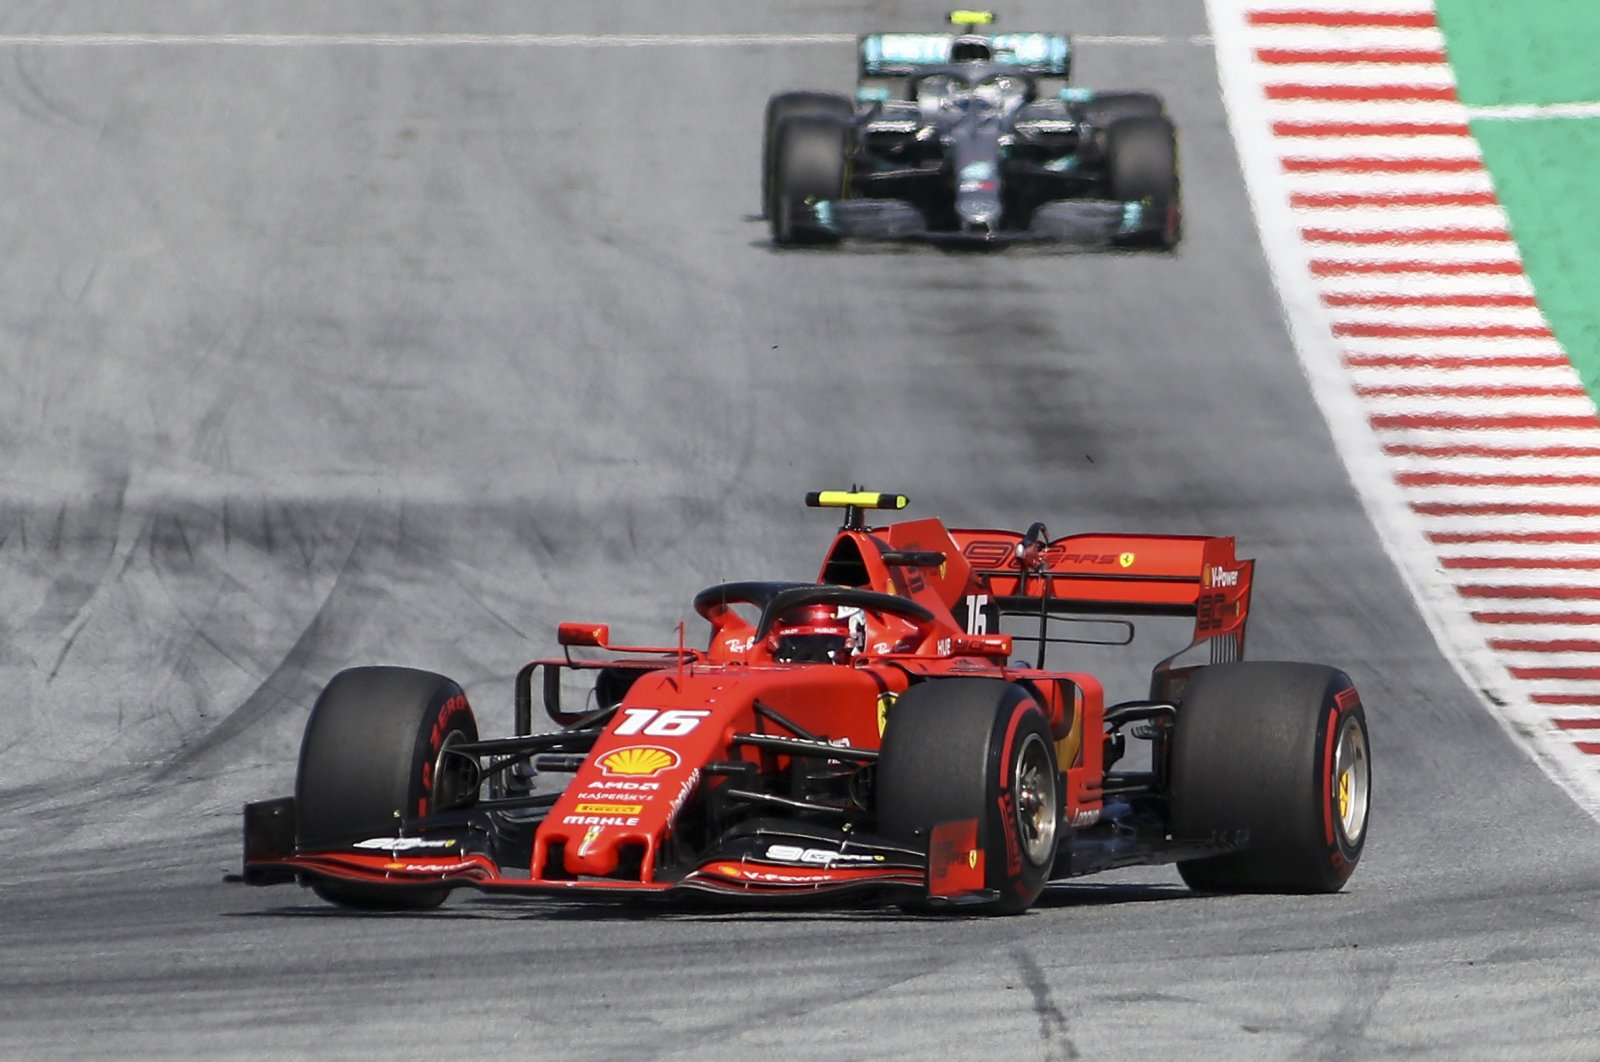 Ferrari driver Charles Leclerc of Monaco leads during the Austrian Formula One Grand Prix at the Red Bull Ring racetrack in Spielberg, Austria, June 30, 2019. (AP Photo)